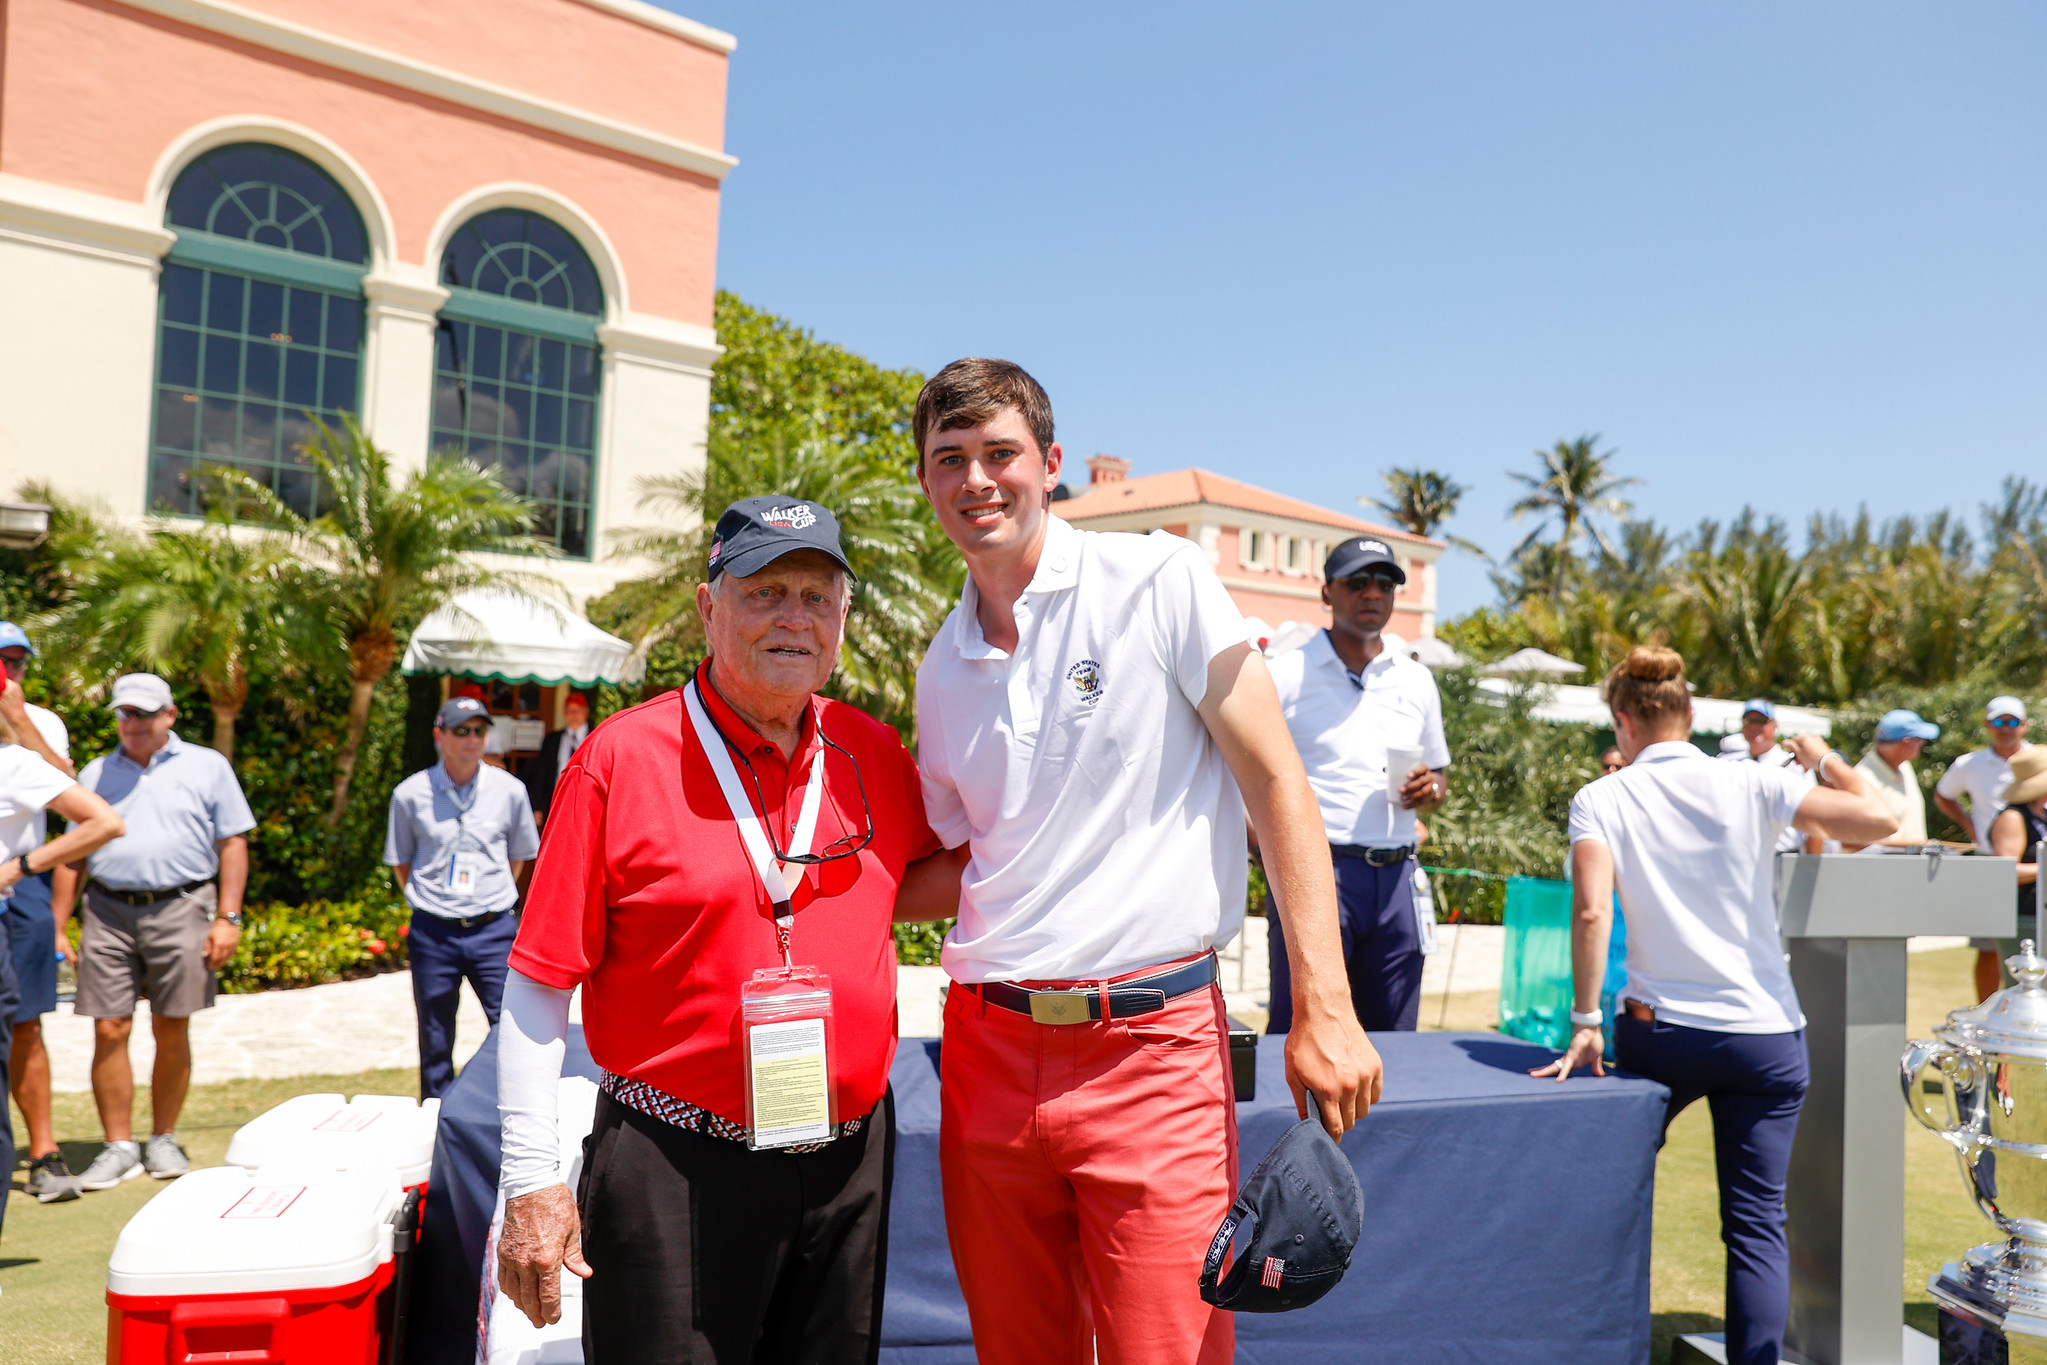 Jack Nicklaus and Davis Thompson pose for a photo on the first tee during Singles at the 2021 Walker Cup at Seminole Golf Club in Juno Beach, Fla. on Sunday, May 9, 2021. (Chris Keane/USGA)